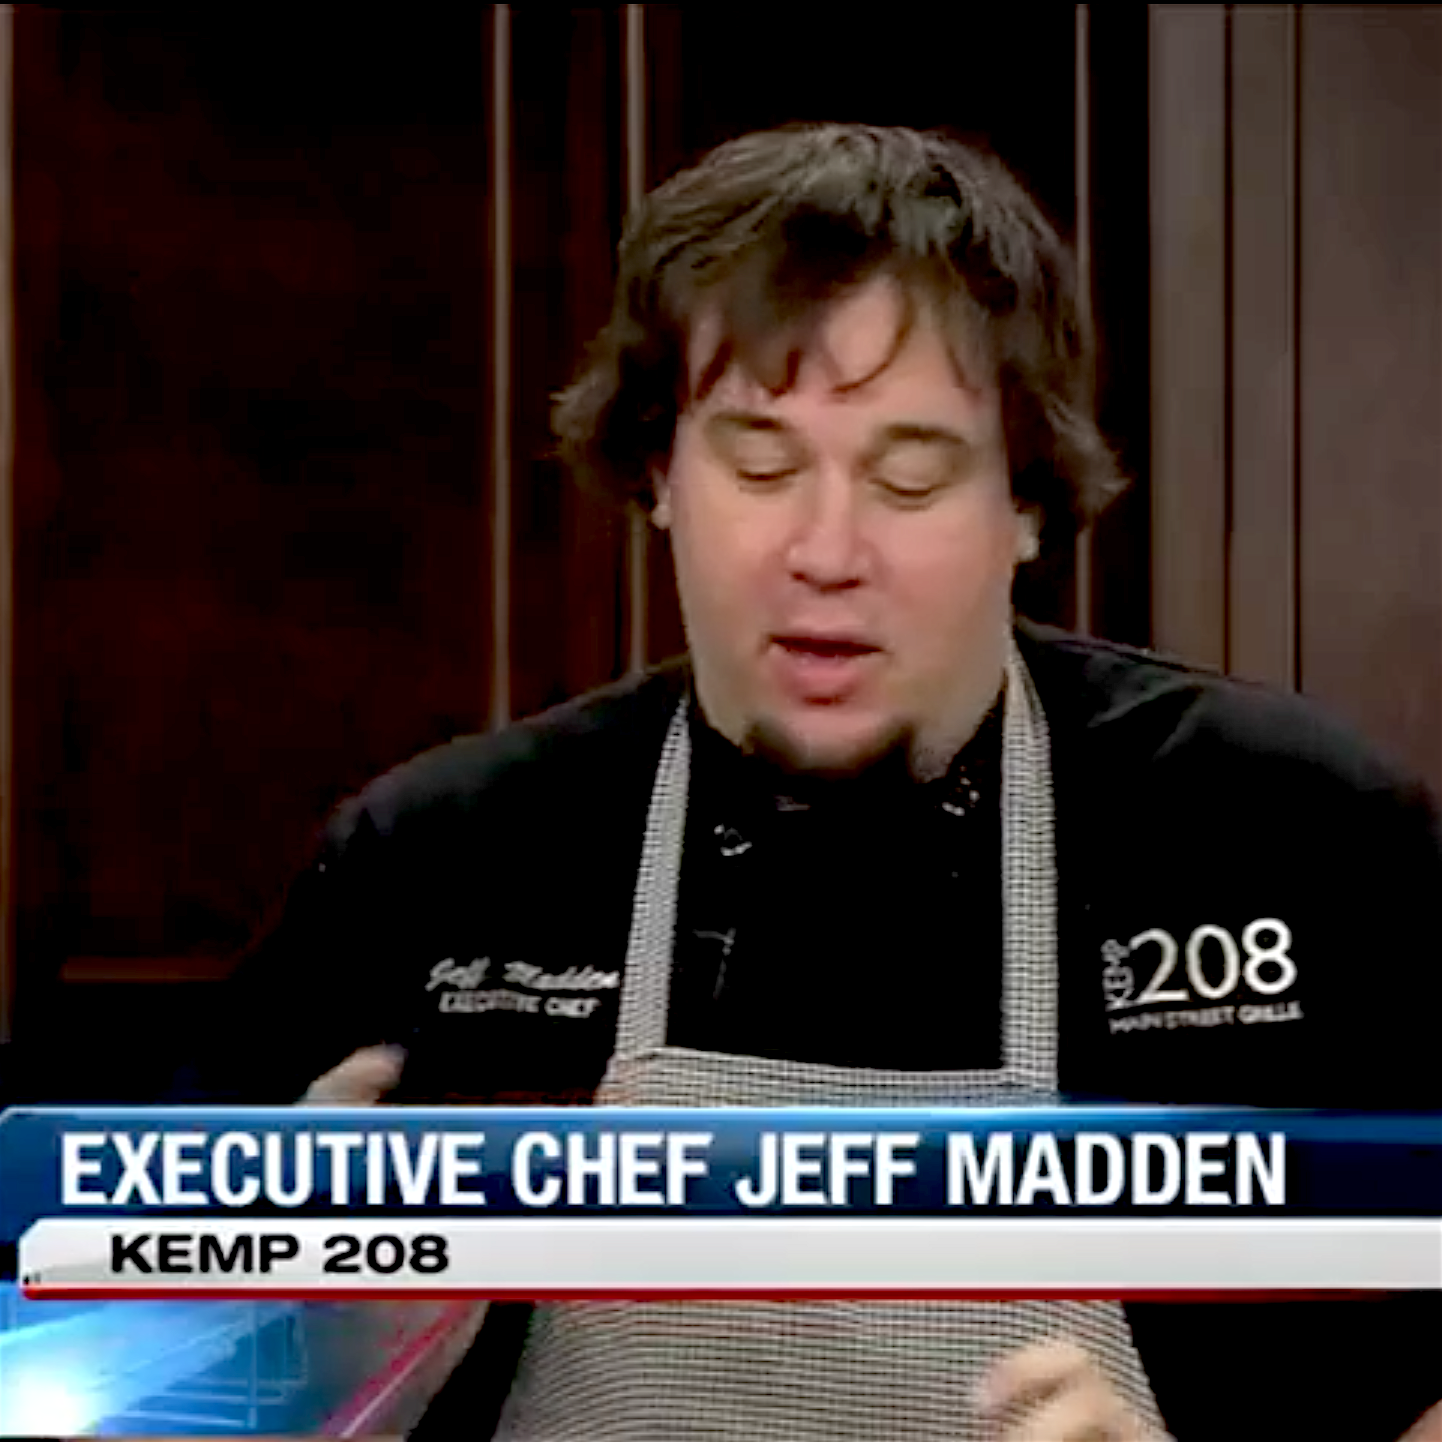 WMBD This Morning - Kemp 208 Executive Chef Jeff Madden makes a Caramelized Apple & Cinnamon Cake with Eugene Daniel live on WMBD This Morning